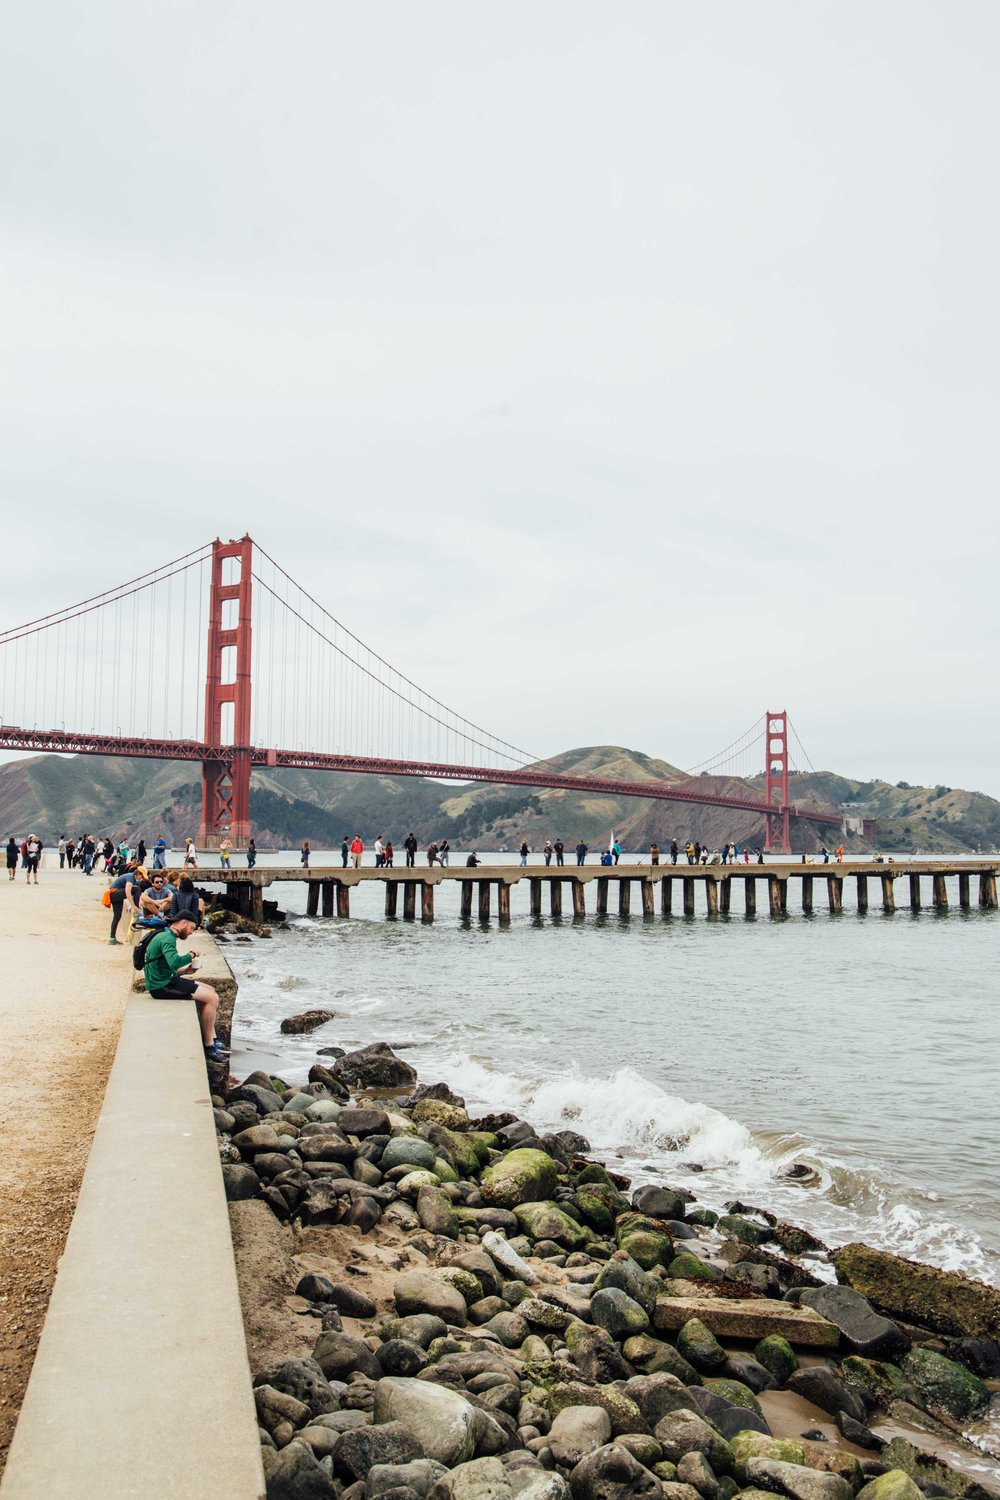 Walk to the Golden Gate Bridge. Photo: Marine Raynard